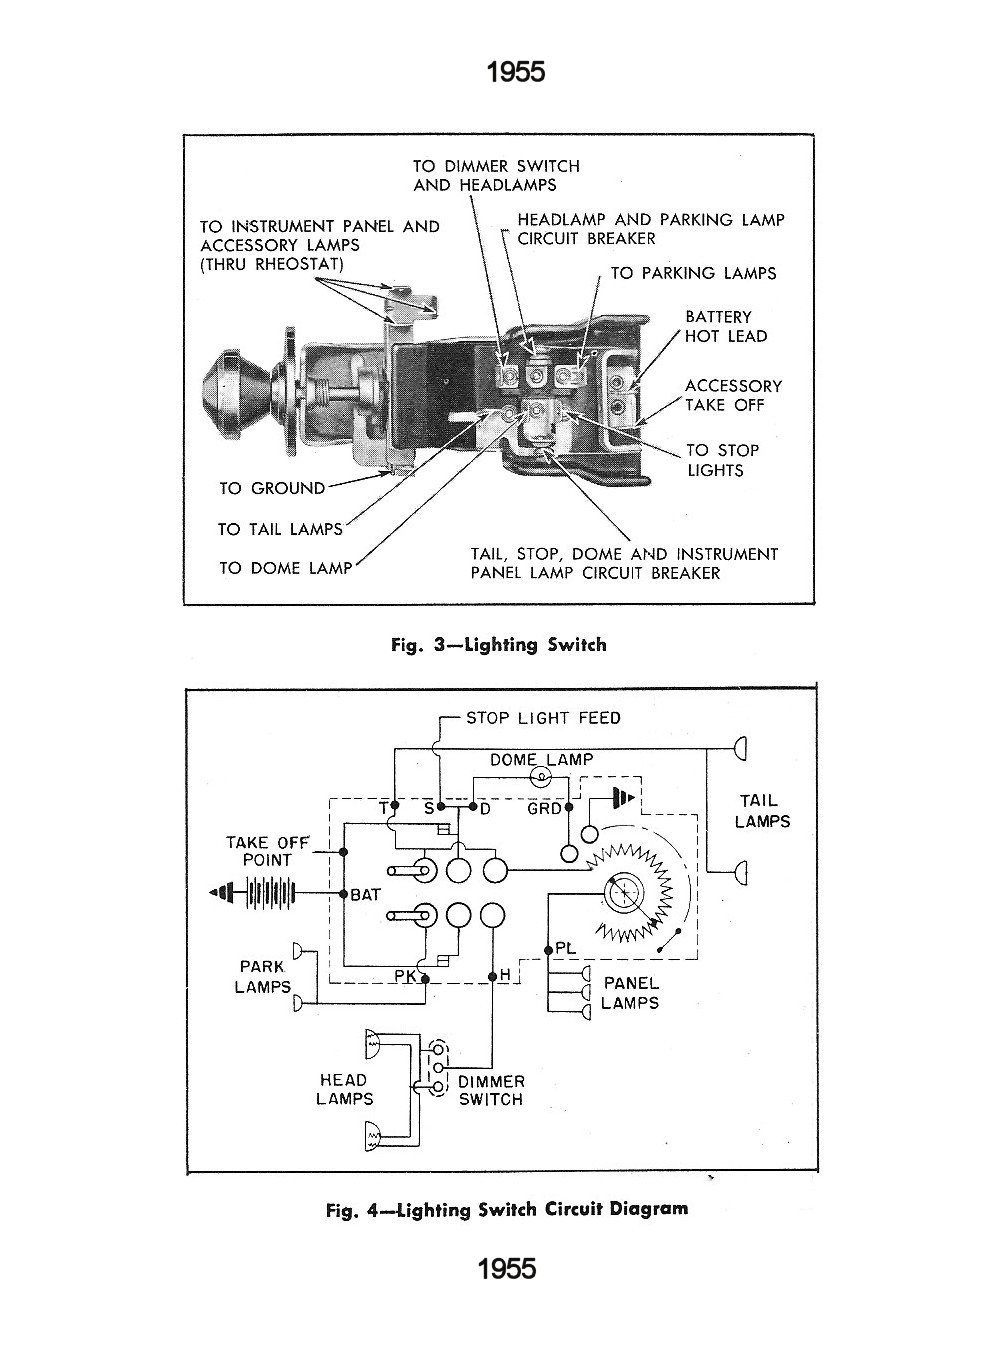 1964 ford falcon wiper switch wiring diagram wiring diagram 1995 Dodge Ram Wiring Diagram 1963 chevrolet wiring diagram wiring diagram1964 ford headlight dimmer switch wiring diagram wiring diagram79 ford headlight